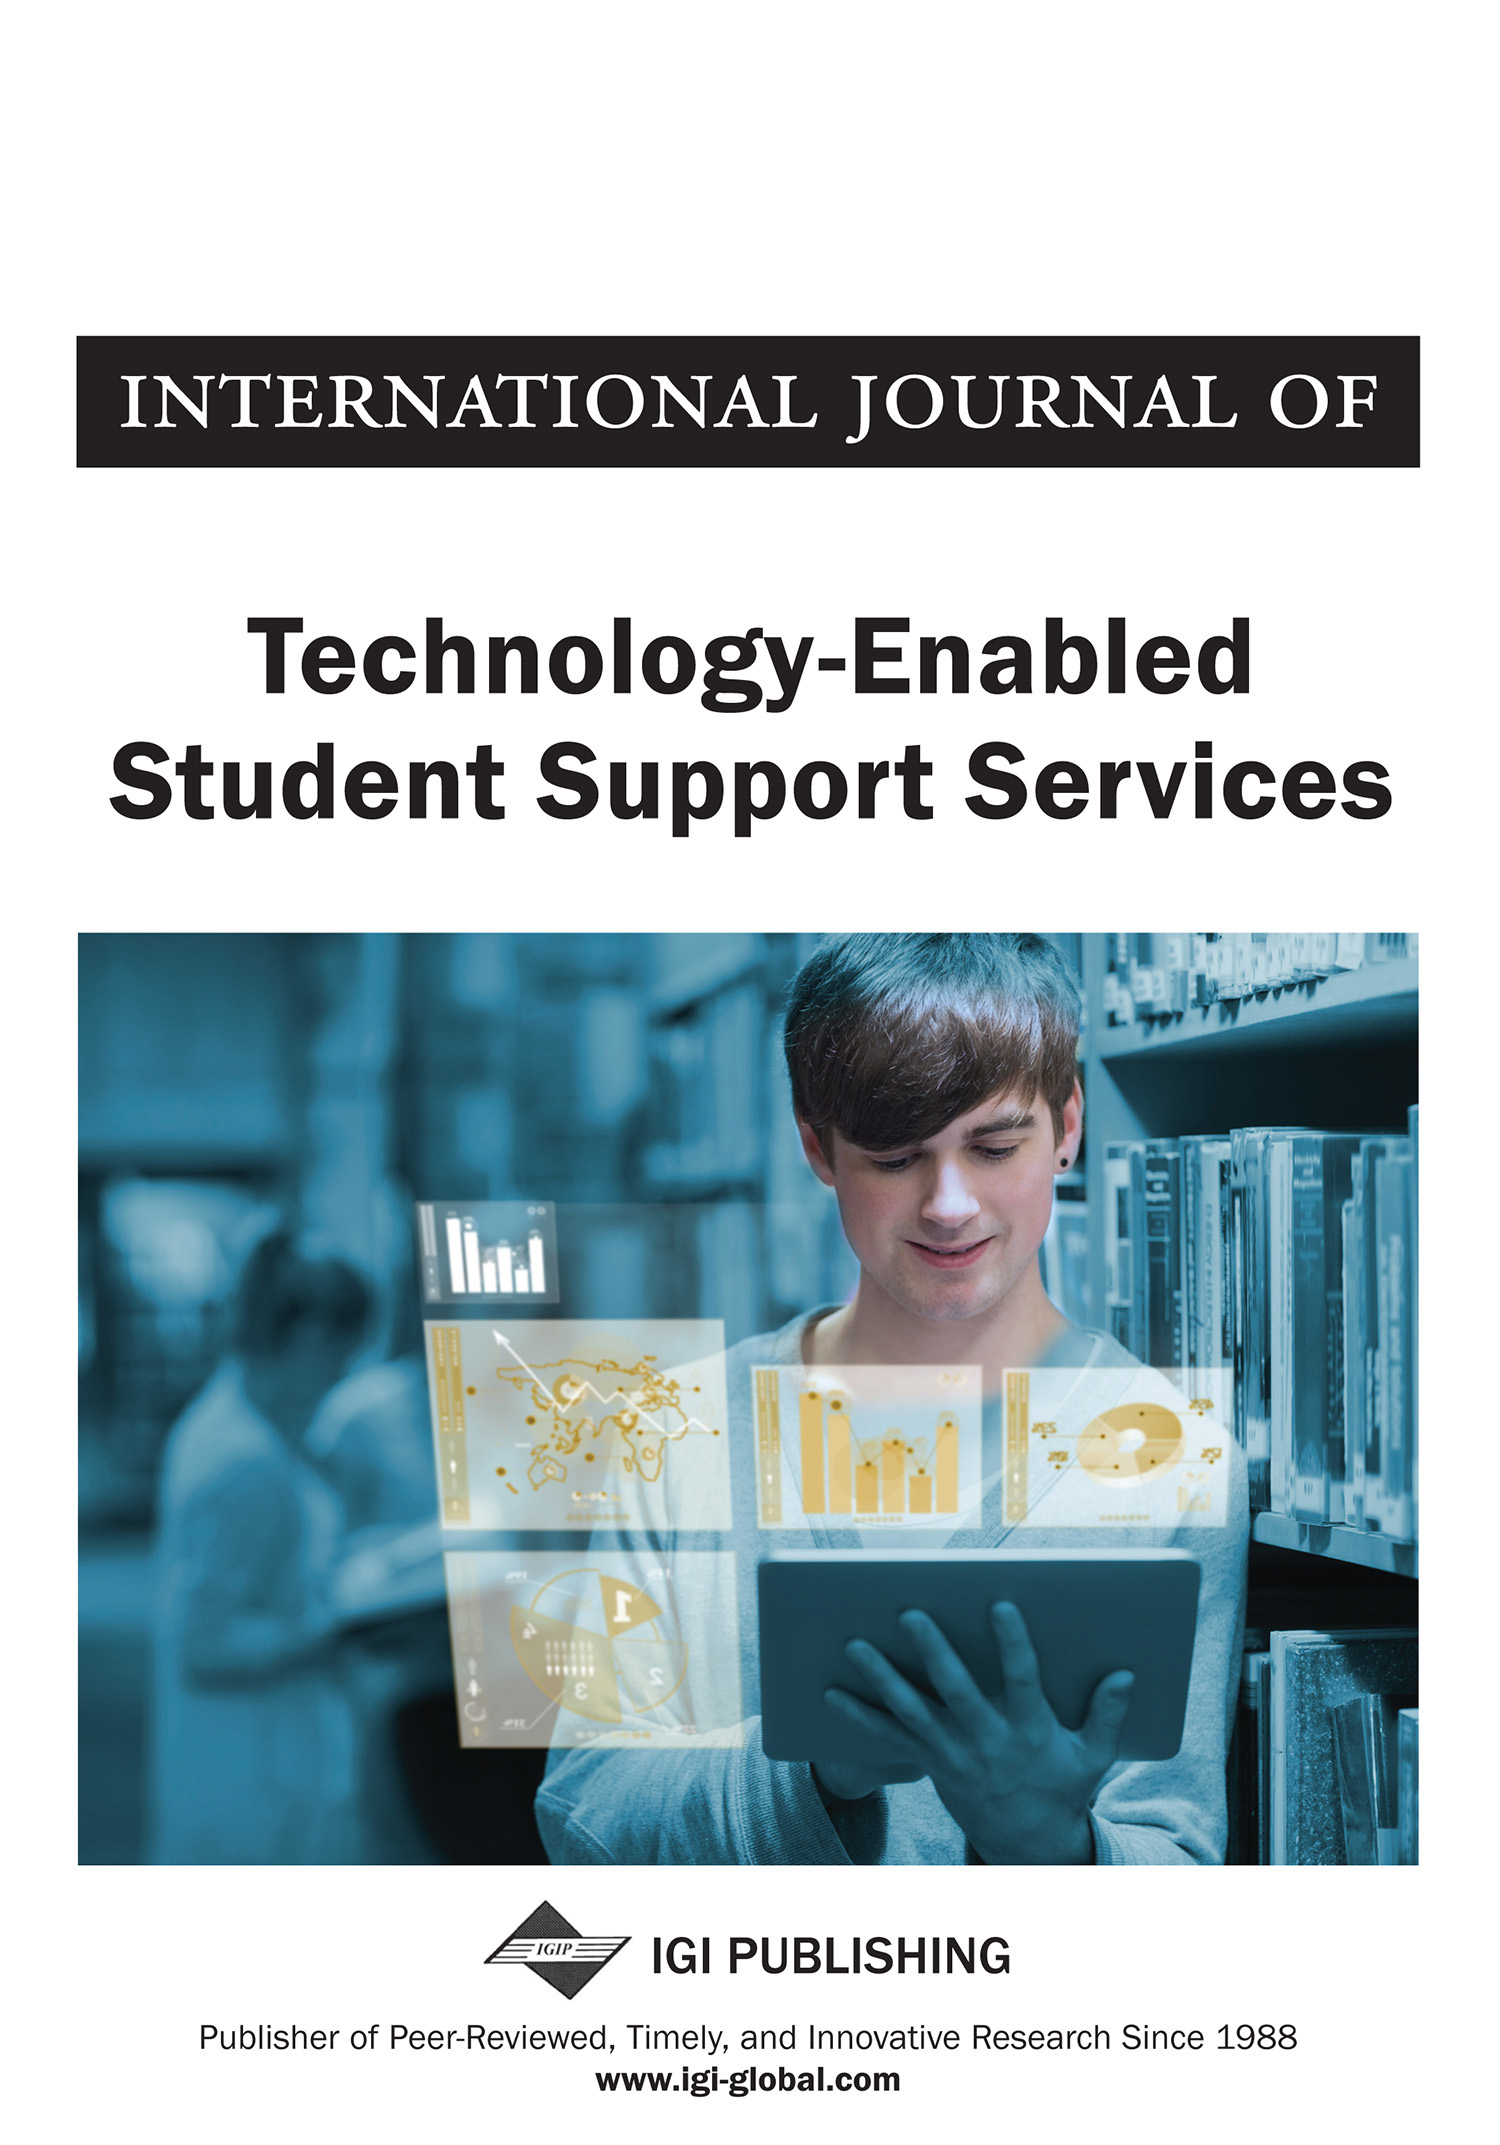 International Journal of Technology-Enabled Student Support Services